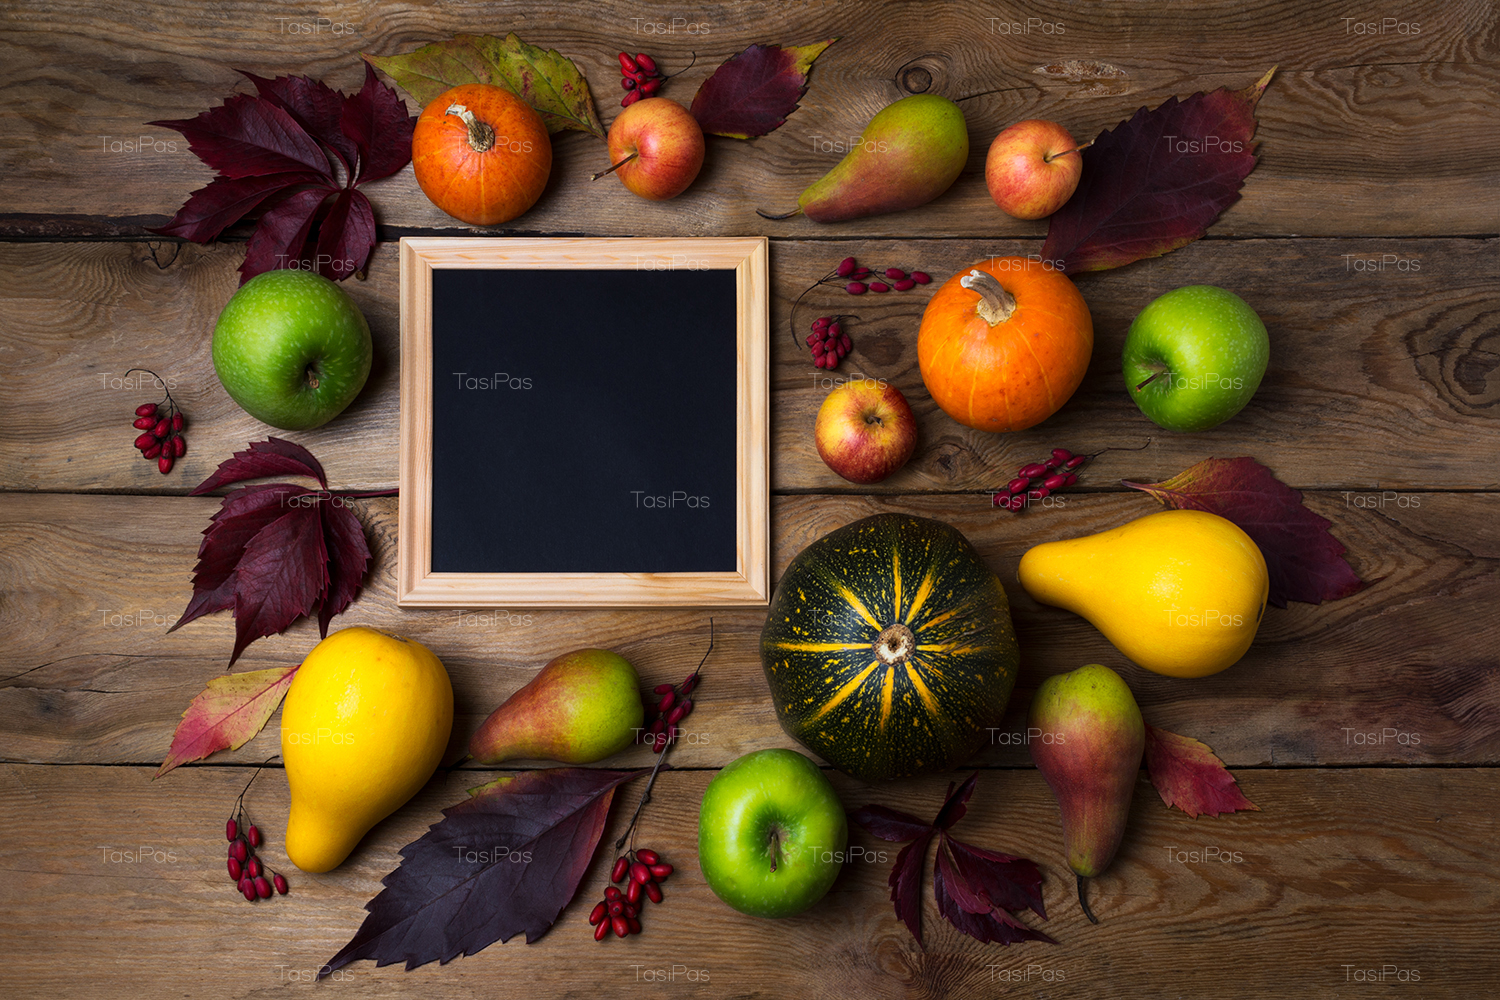 Rustic square frame mockup with pumpkins, pears example image 4